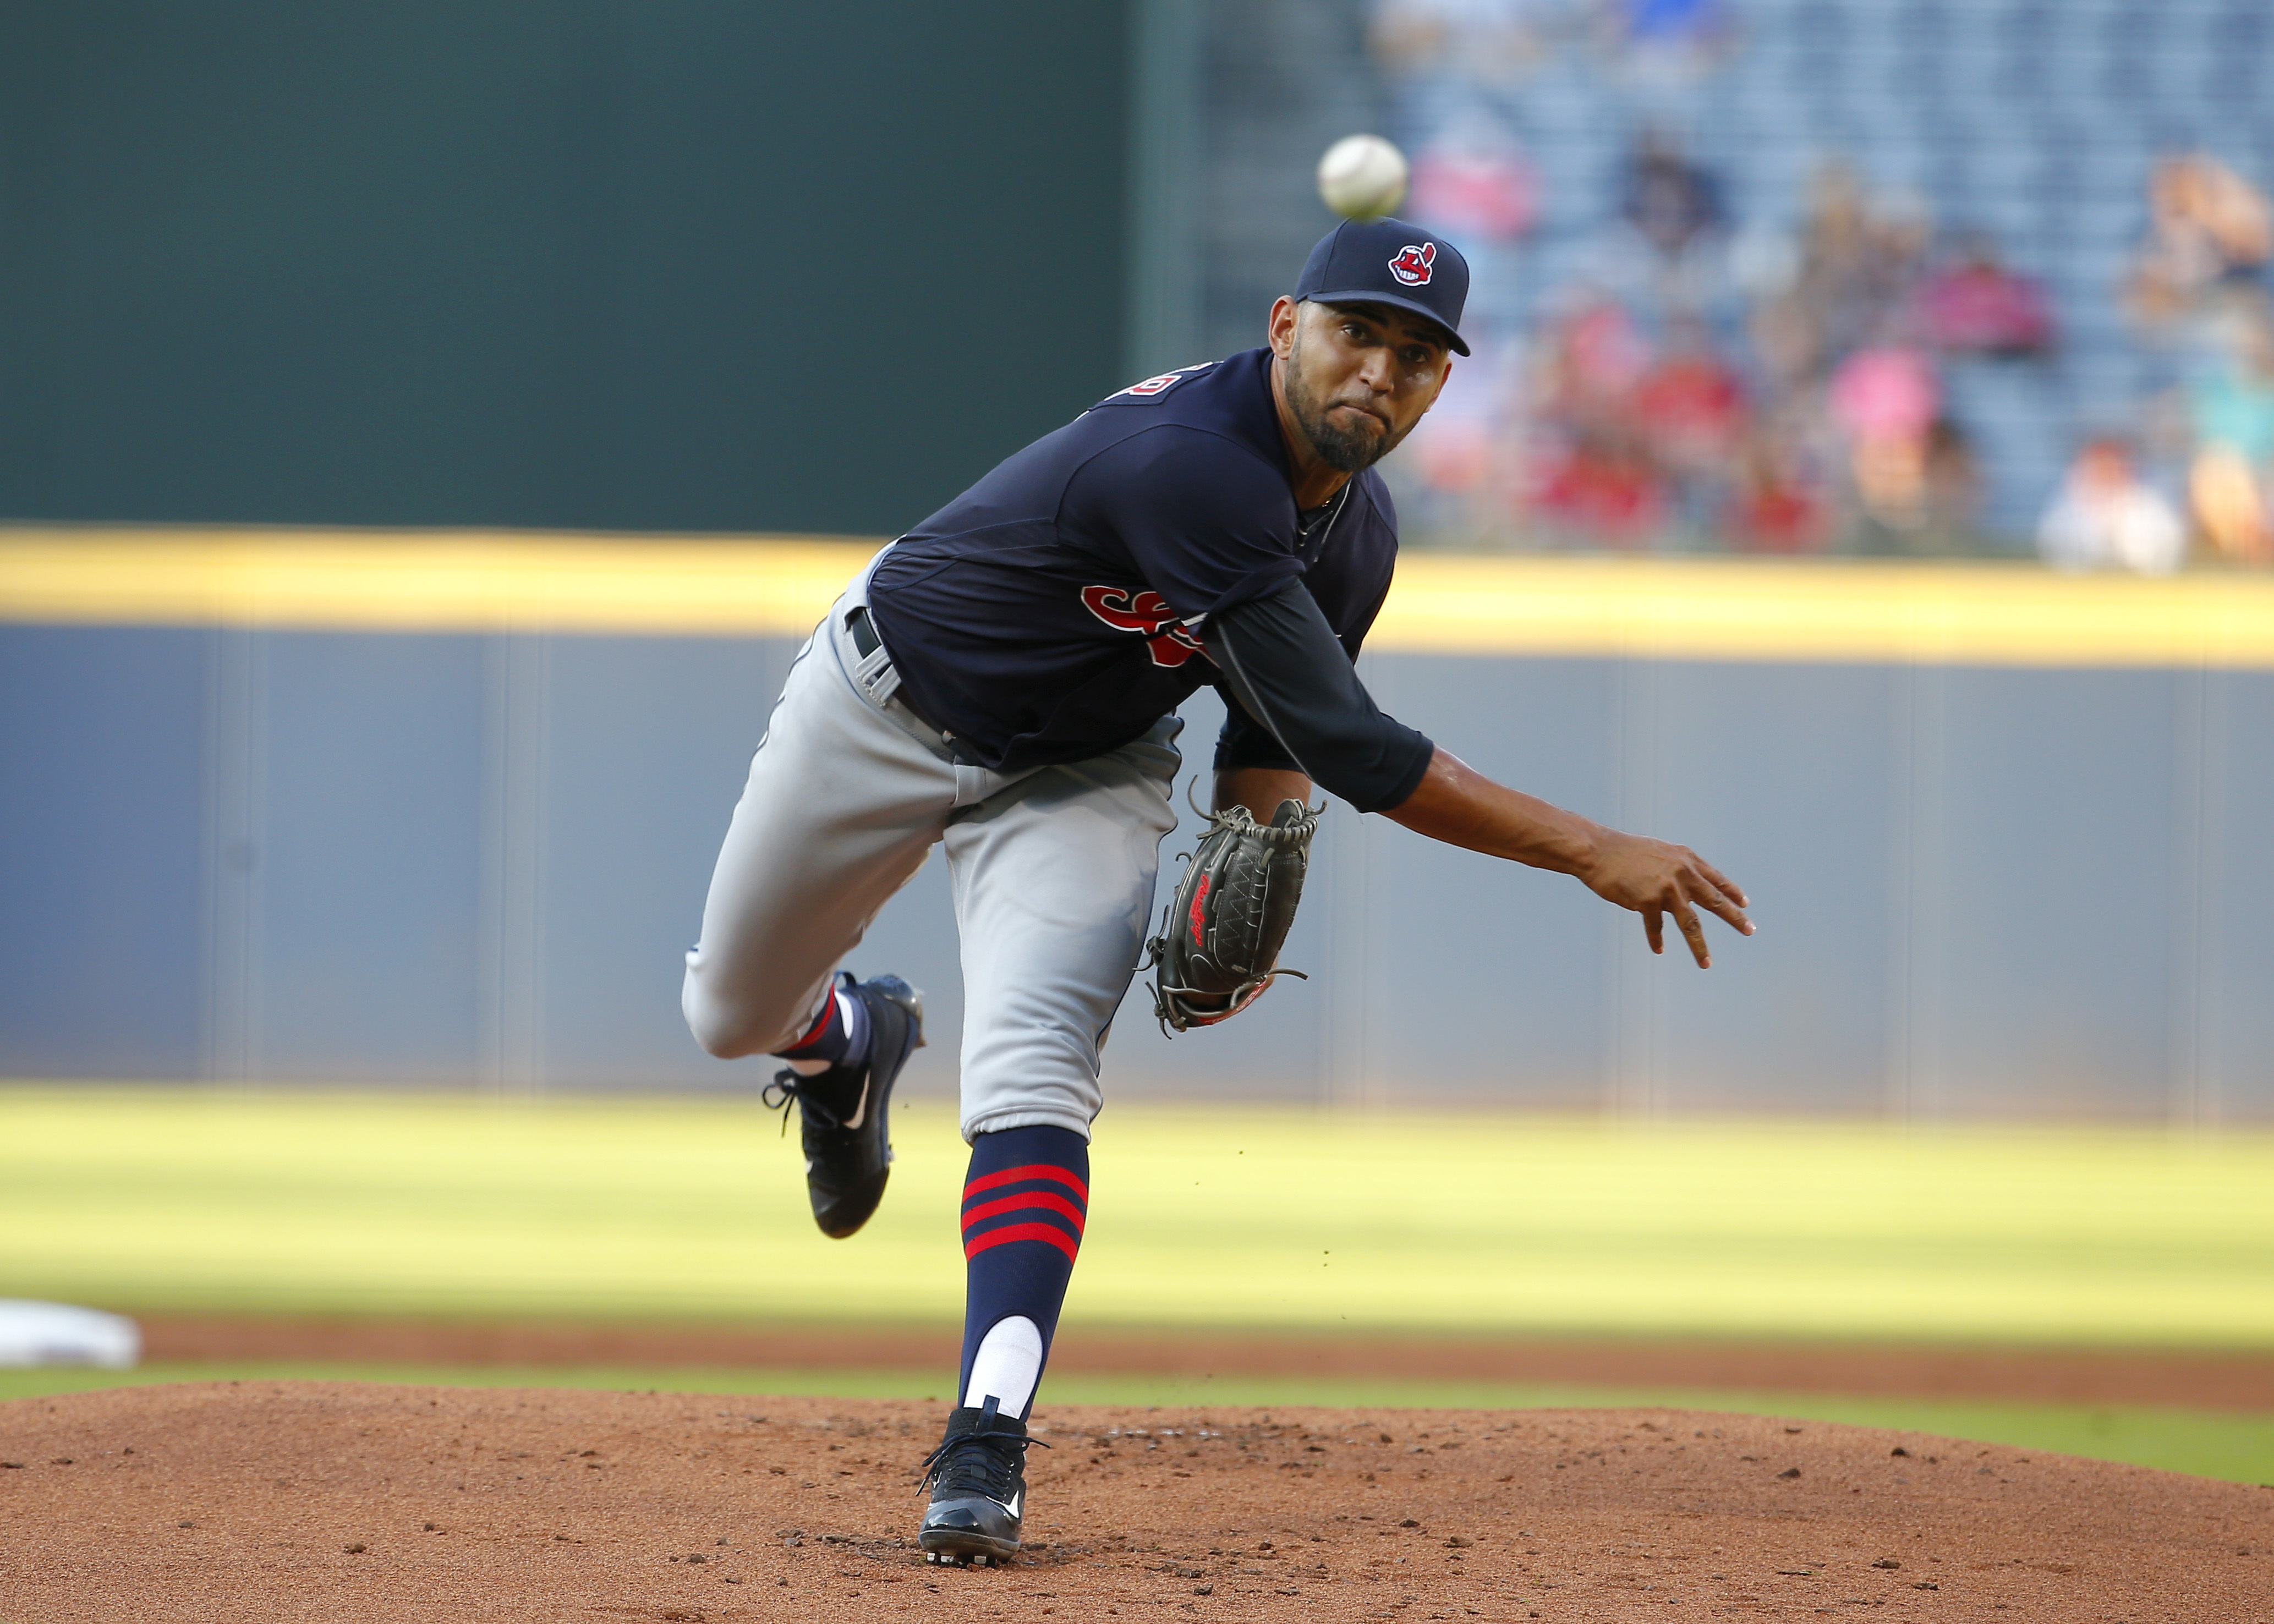 Cleveland Indians starting pitcher Danny Salazar delivers in the first inning of a baseball game against the Atlanta Braves, Wednesday, June 29, 2016, in Atlanta. (AP Photo/Todd Kirkland)